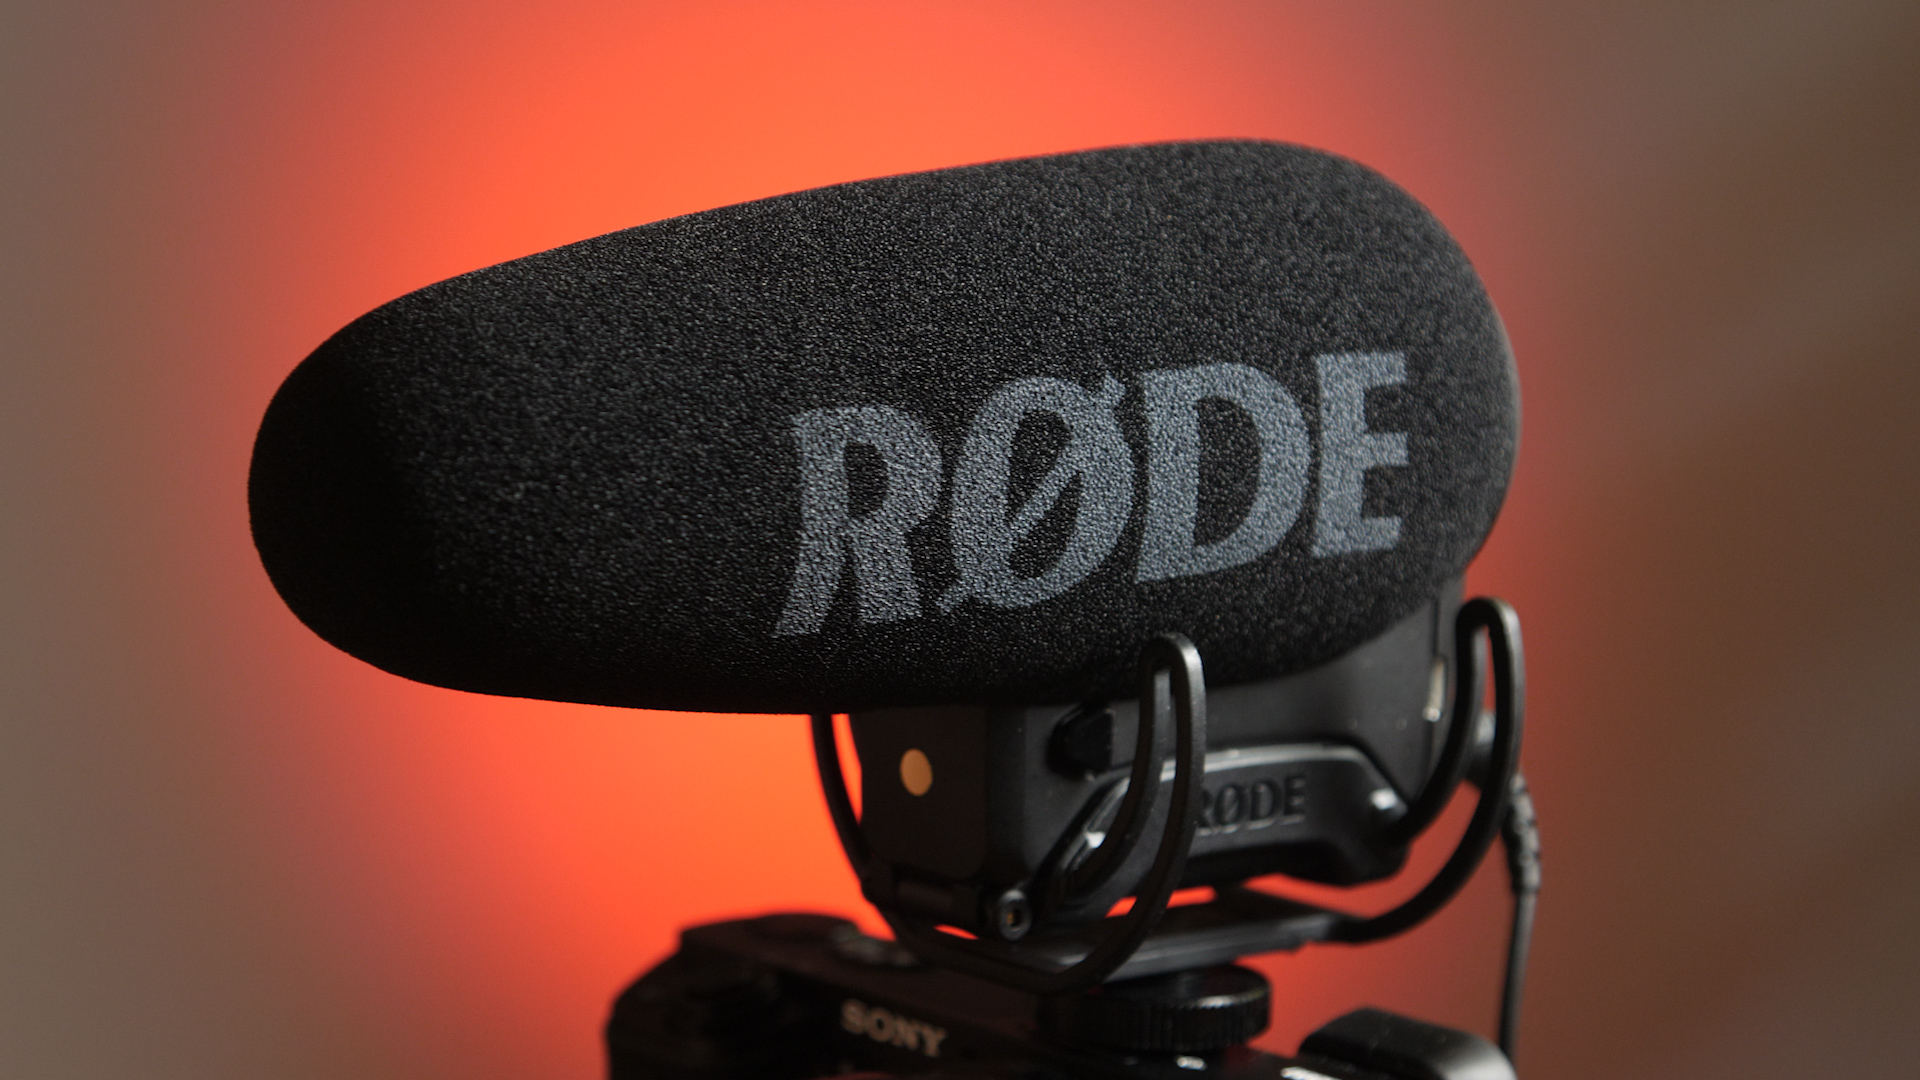 Rde Videomic Pro Is It Worth The Upgrade Newsshooter Rode Microphone Rycote Side